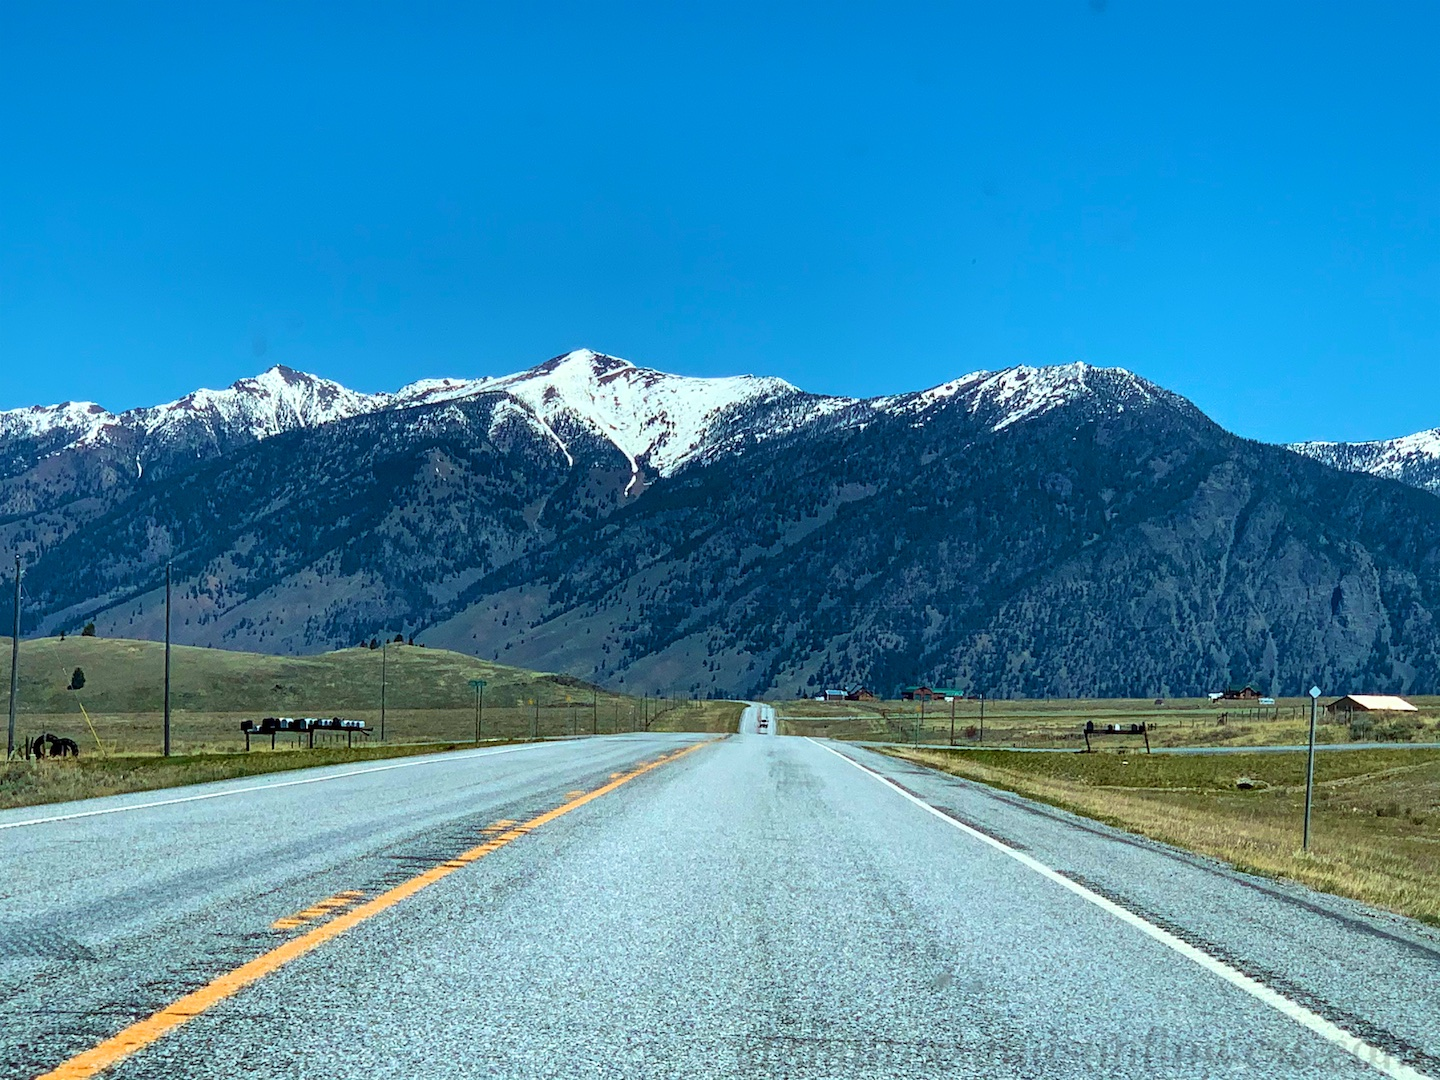 Highway '20' from West Yellowstone, Montana, USA